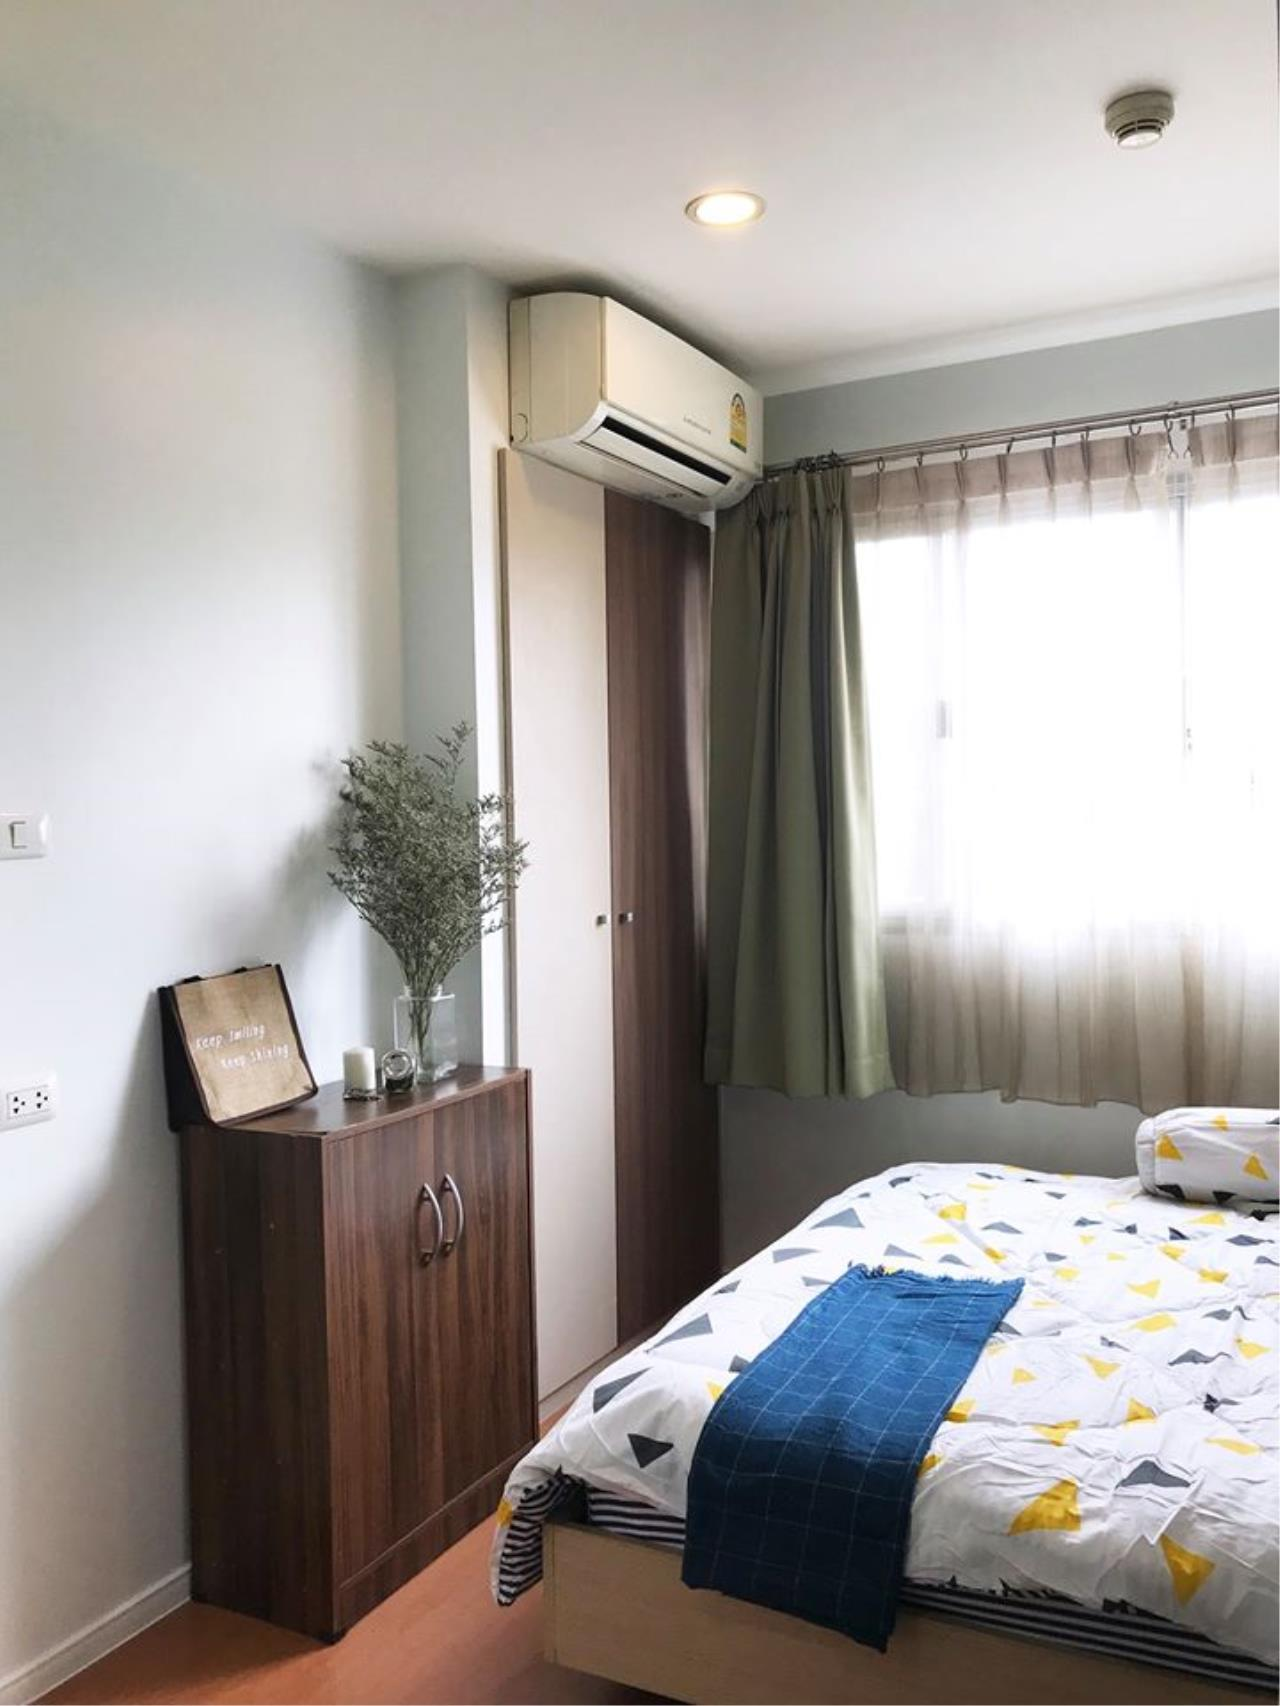 Agent Thawanrat Agency's Condo for rental LUMPINI CONDOTOWN NIDA – SEREETHAI 1 bedroom,1 bathroom. size 23 sqm.Floor 32 th. fully furnished Ready to move in 5